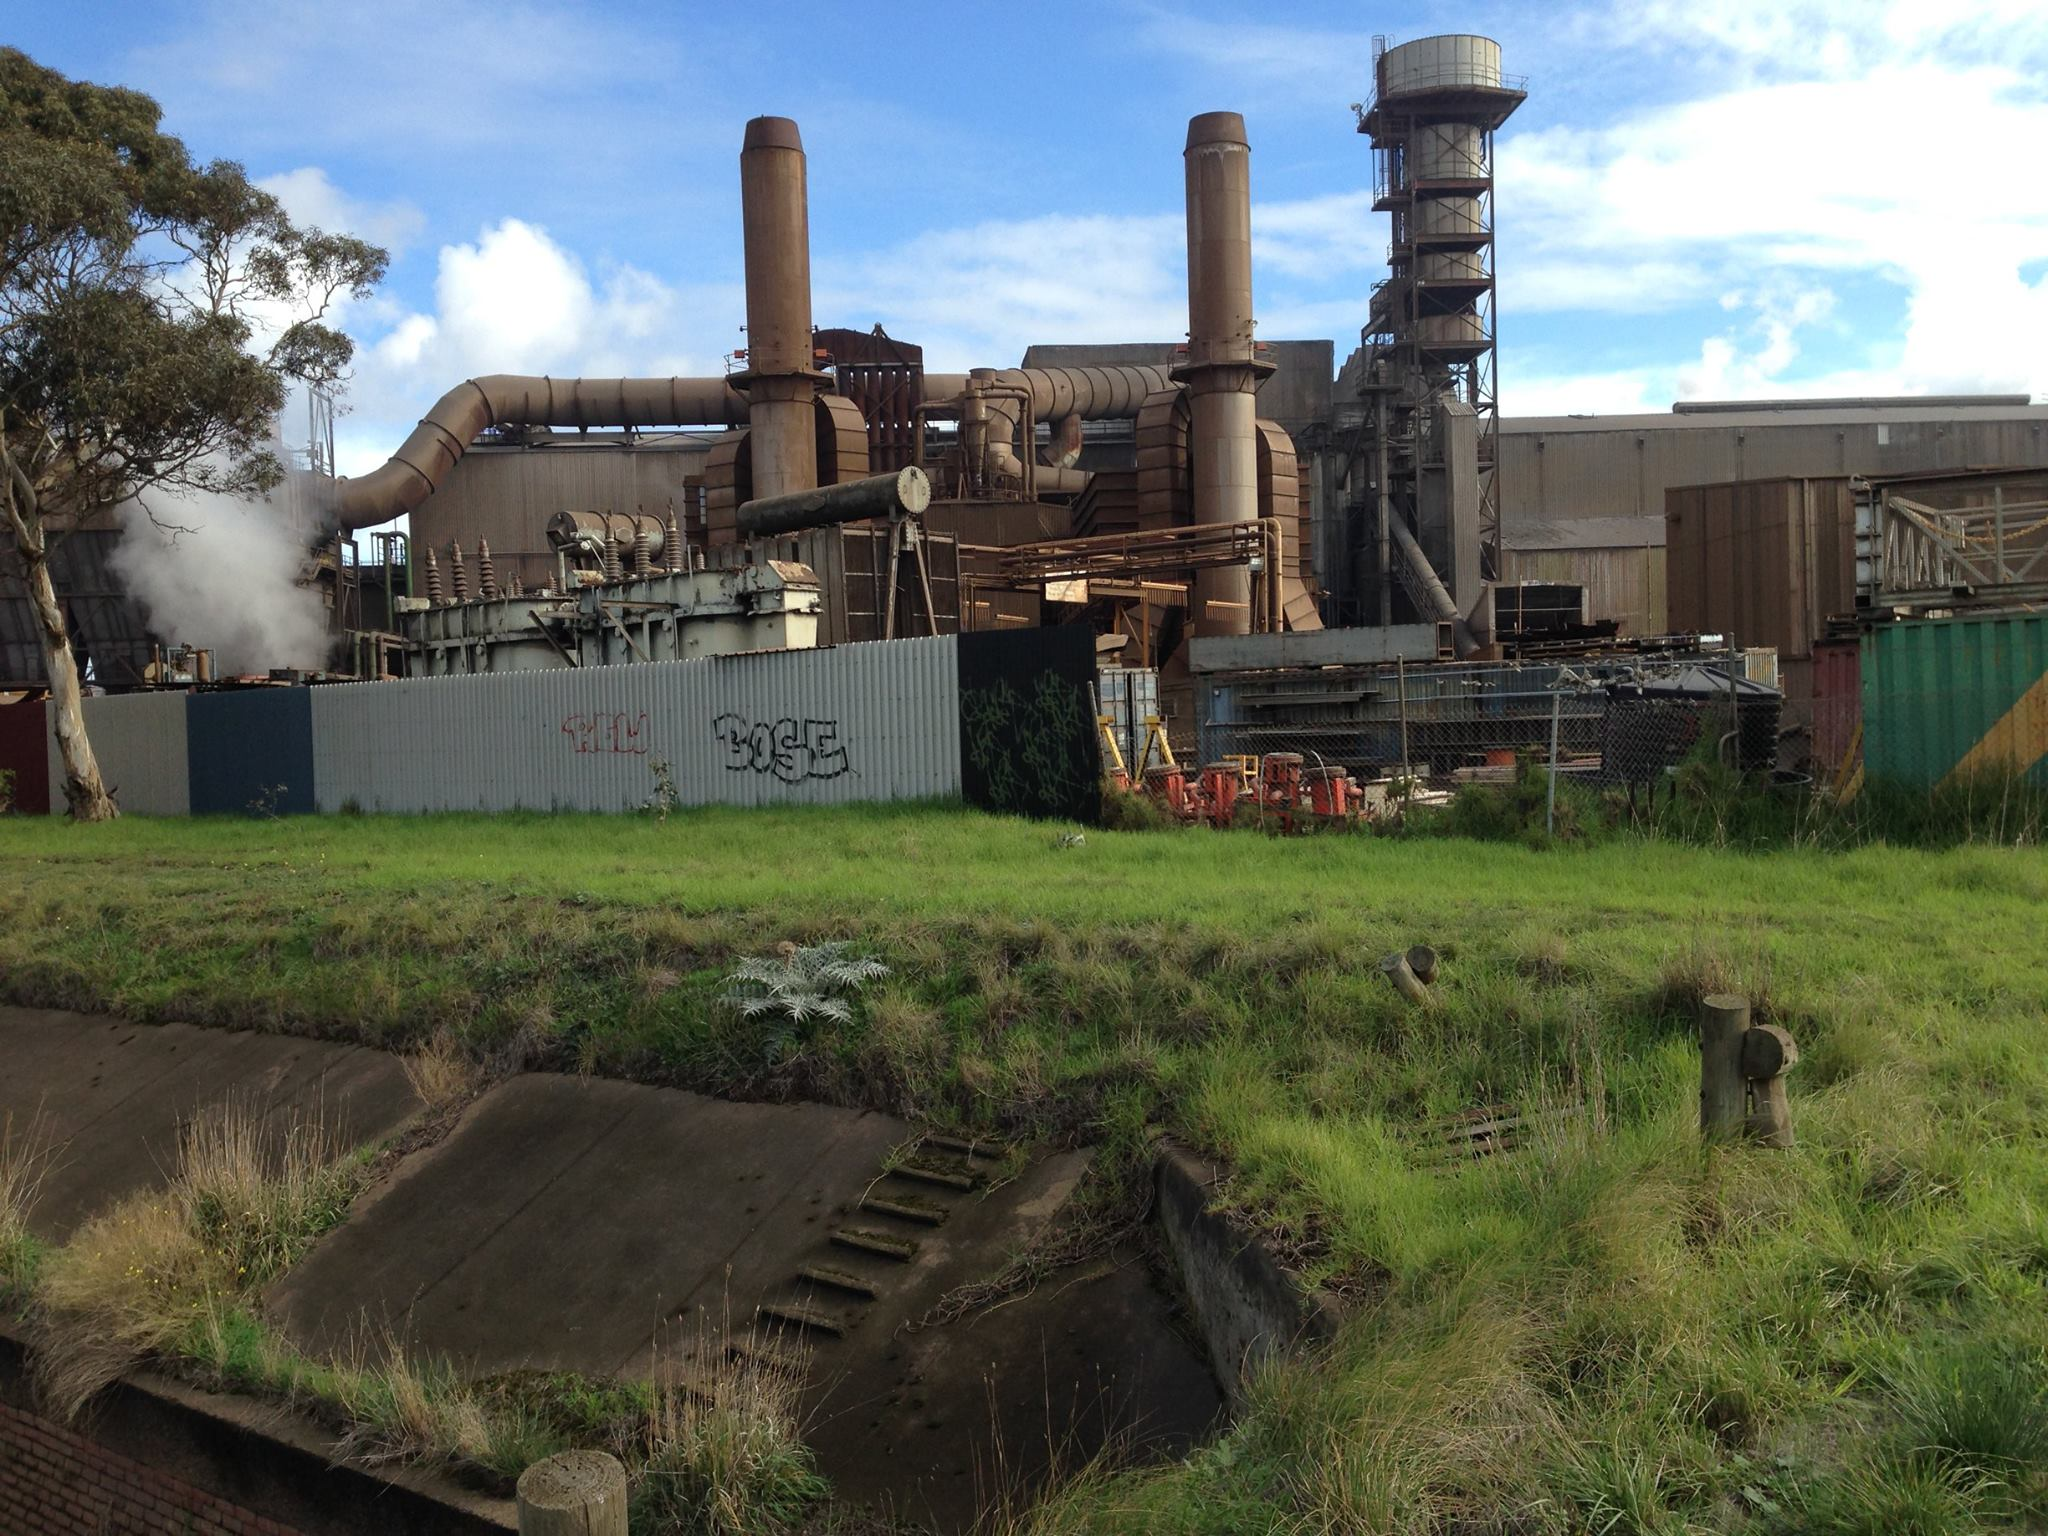 The Sewer and Industrial Melbourne